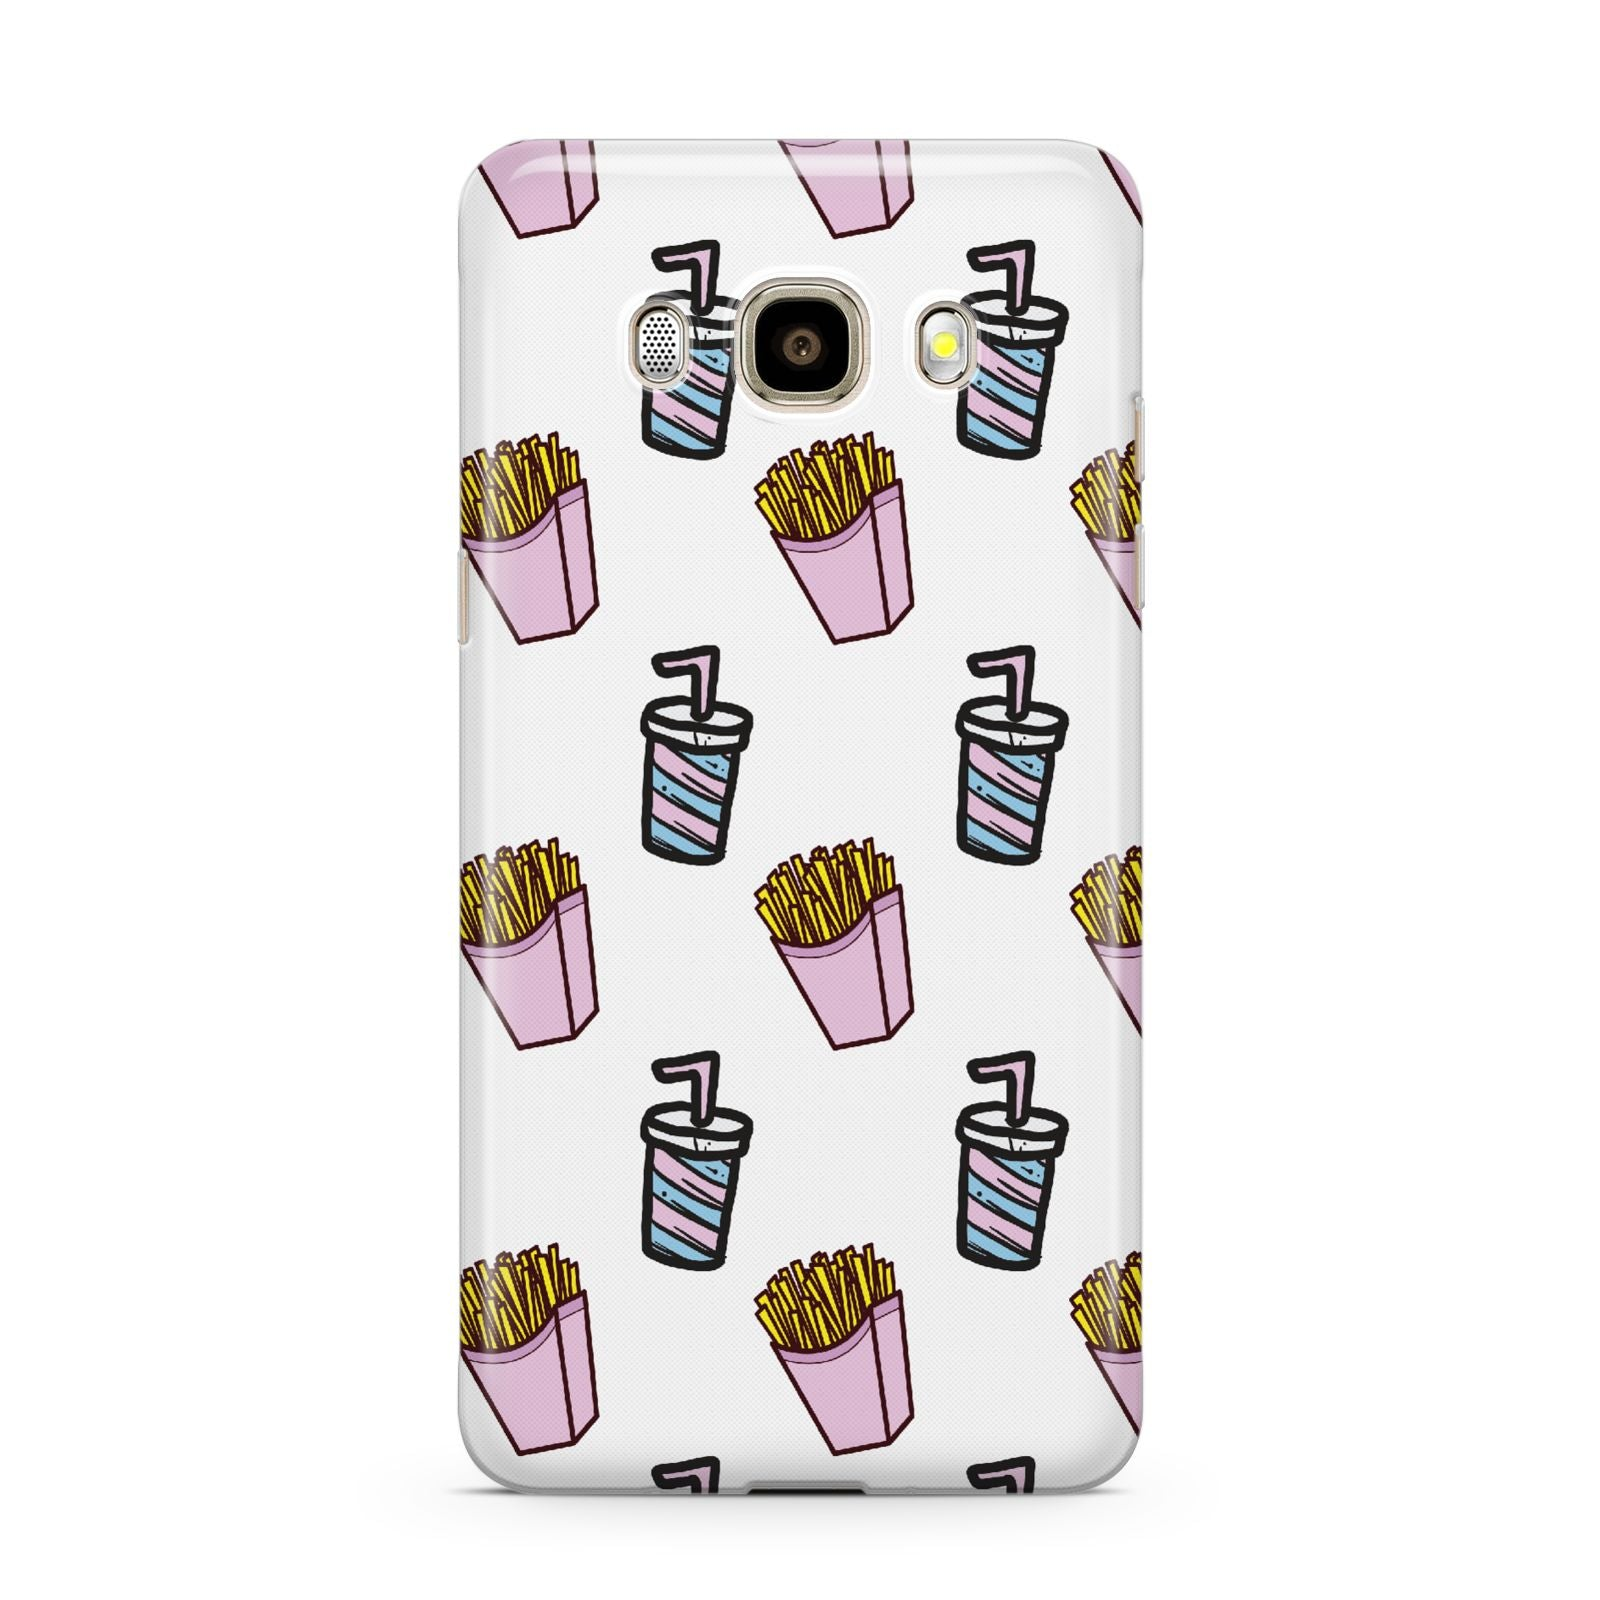 Fries Shake Fast Food Samsung Galaxy J7 2016 Case on gold phone